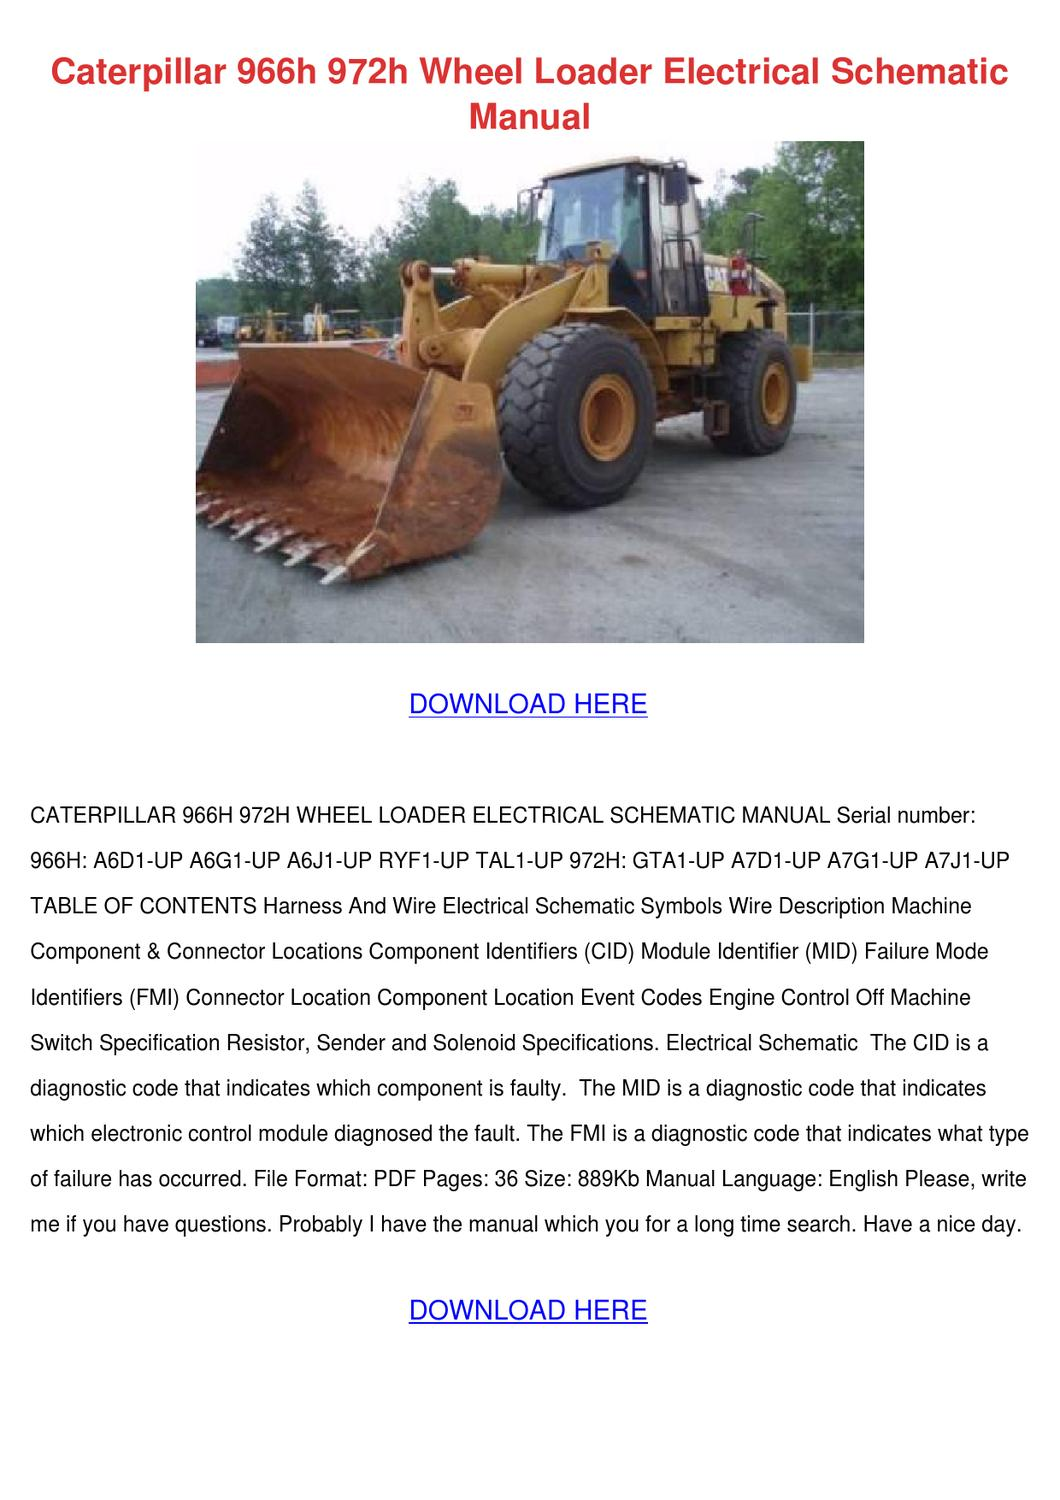 Caterpillar 966h 972h Wheel Loader Electrical By